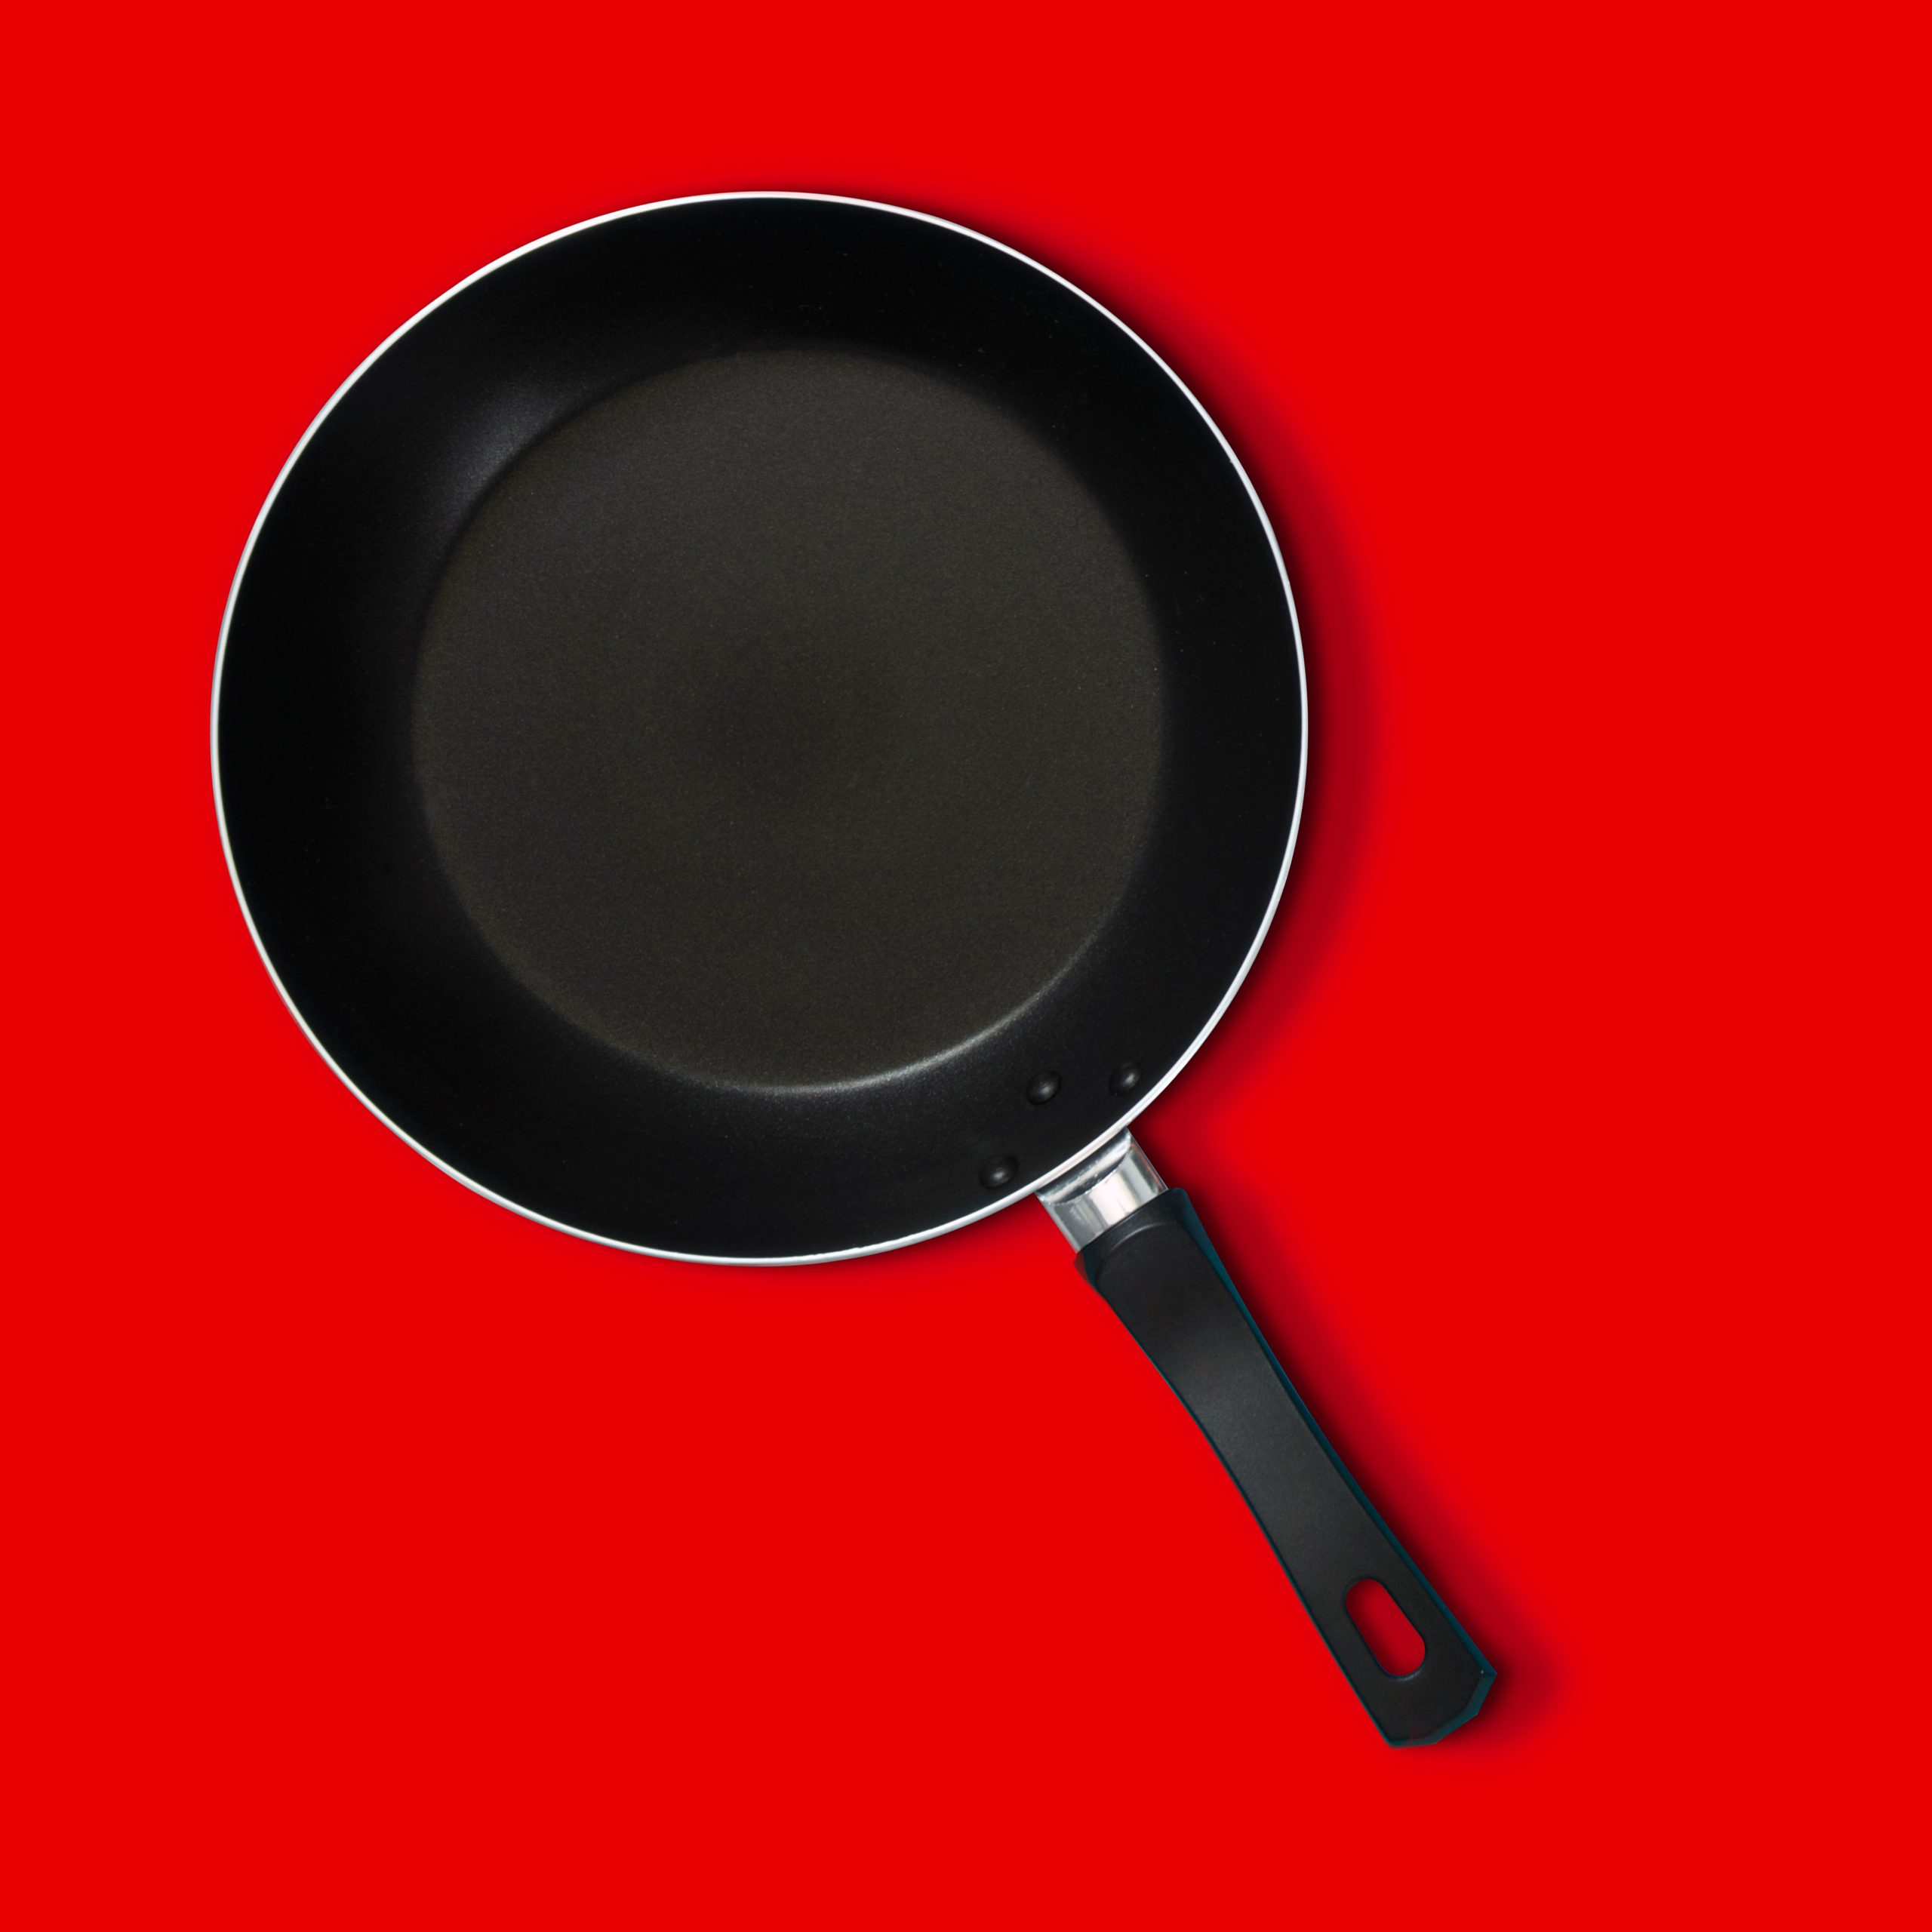 Non-stick pan over red background